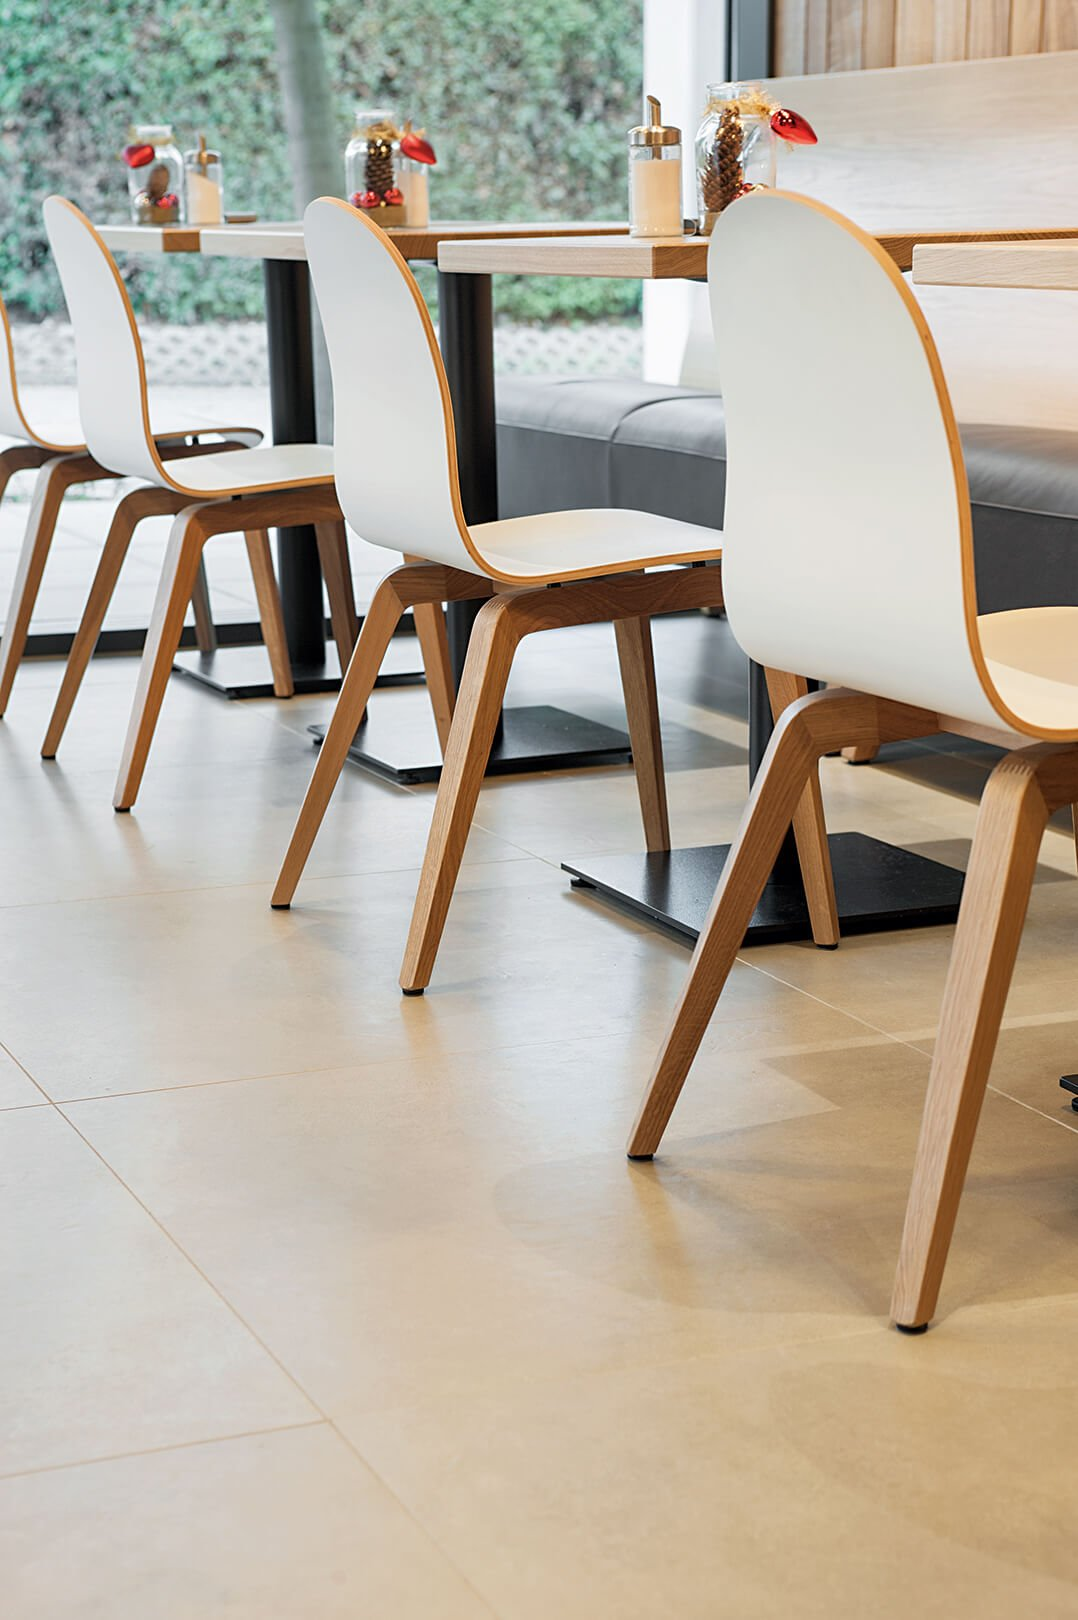 Indoor Chair systems for your restaurant or hotel